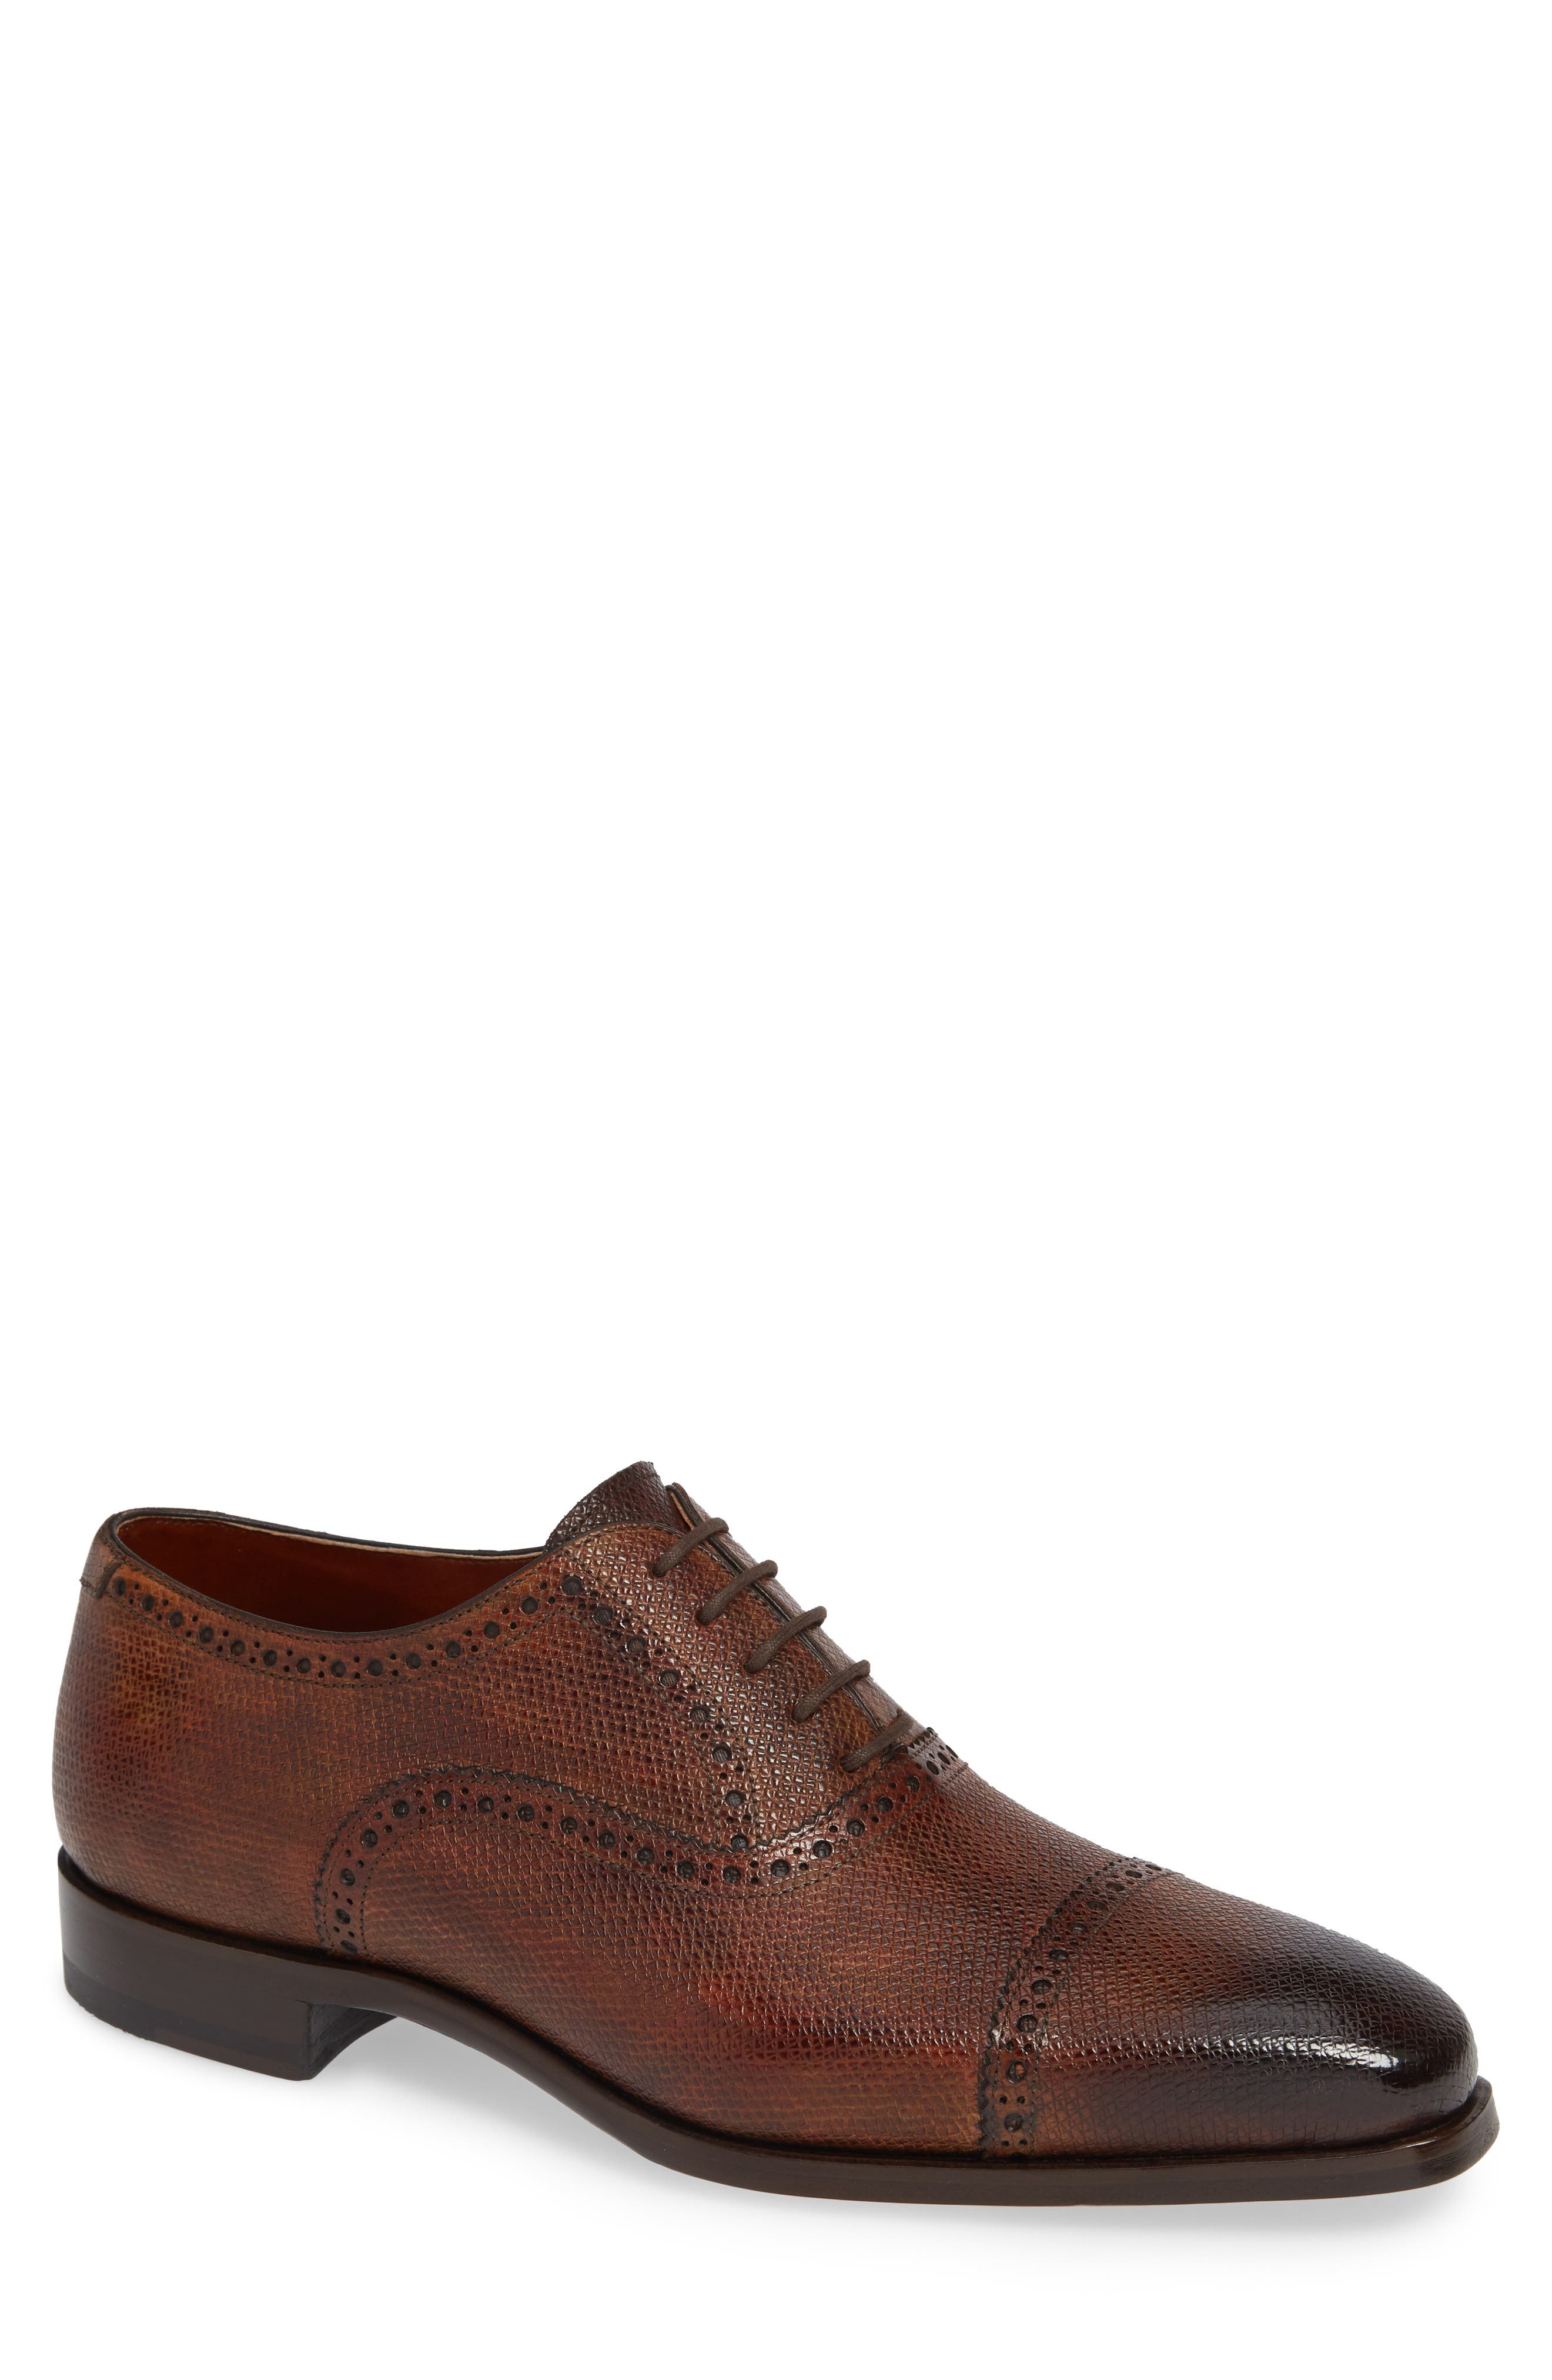 Charlton Cap Toe Oxford,                             Main thumbnail 1, color,                             MID BROWN LEATHER